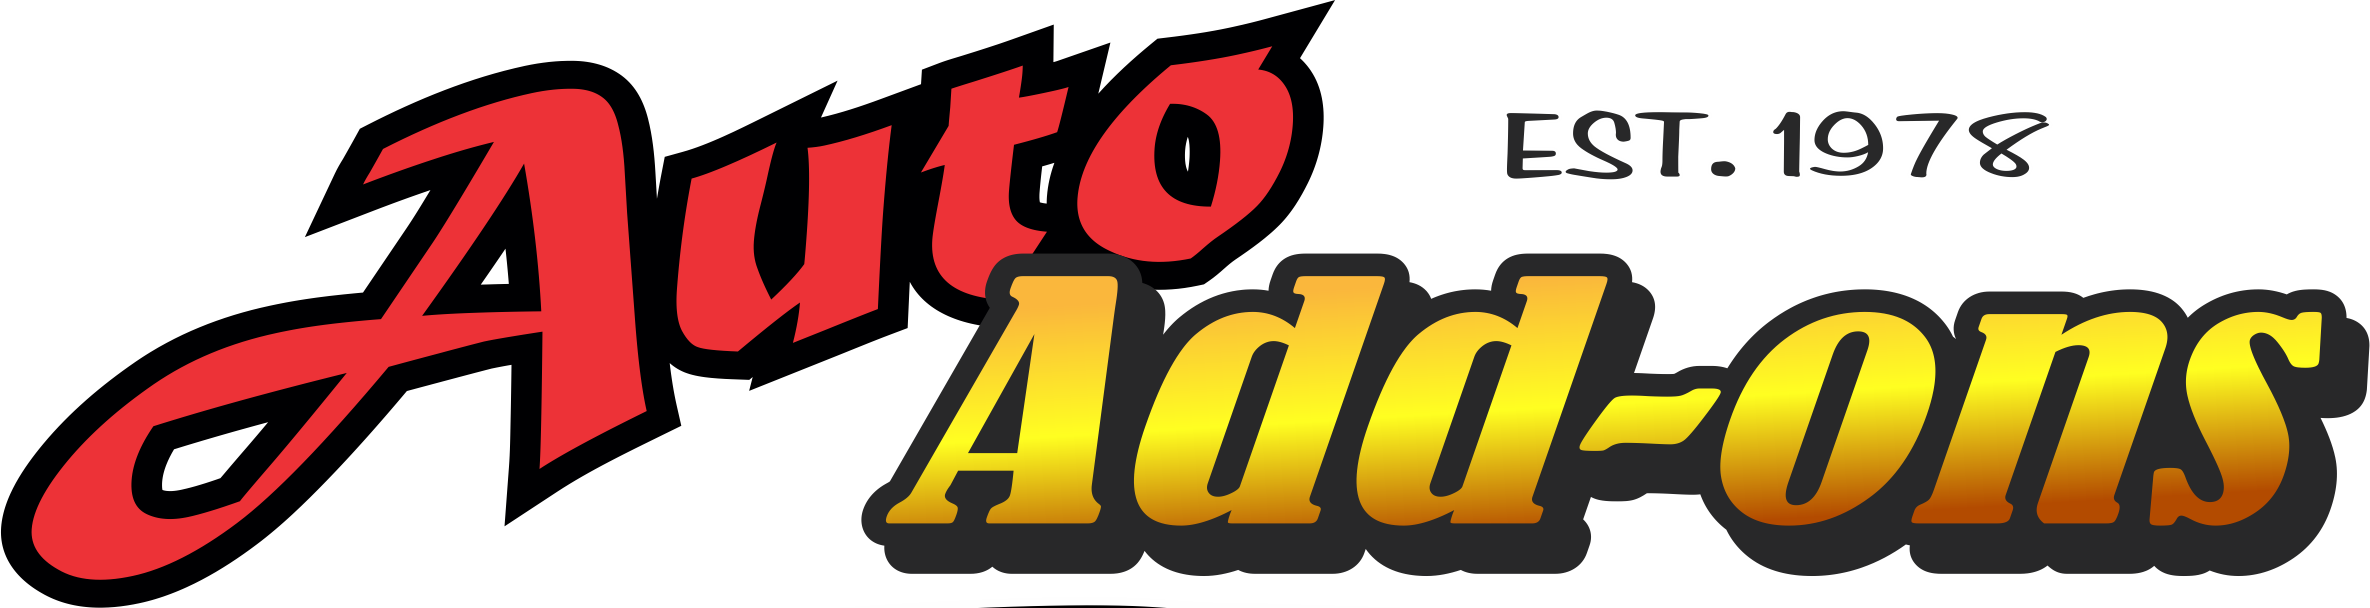 Auto Add-ons of Tavares Florida